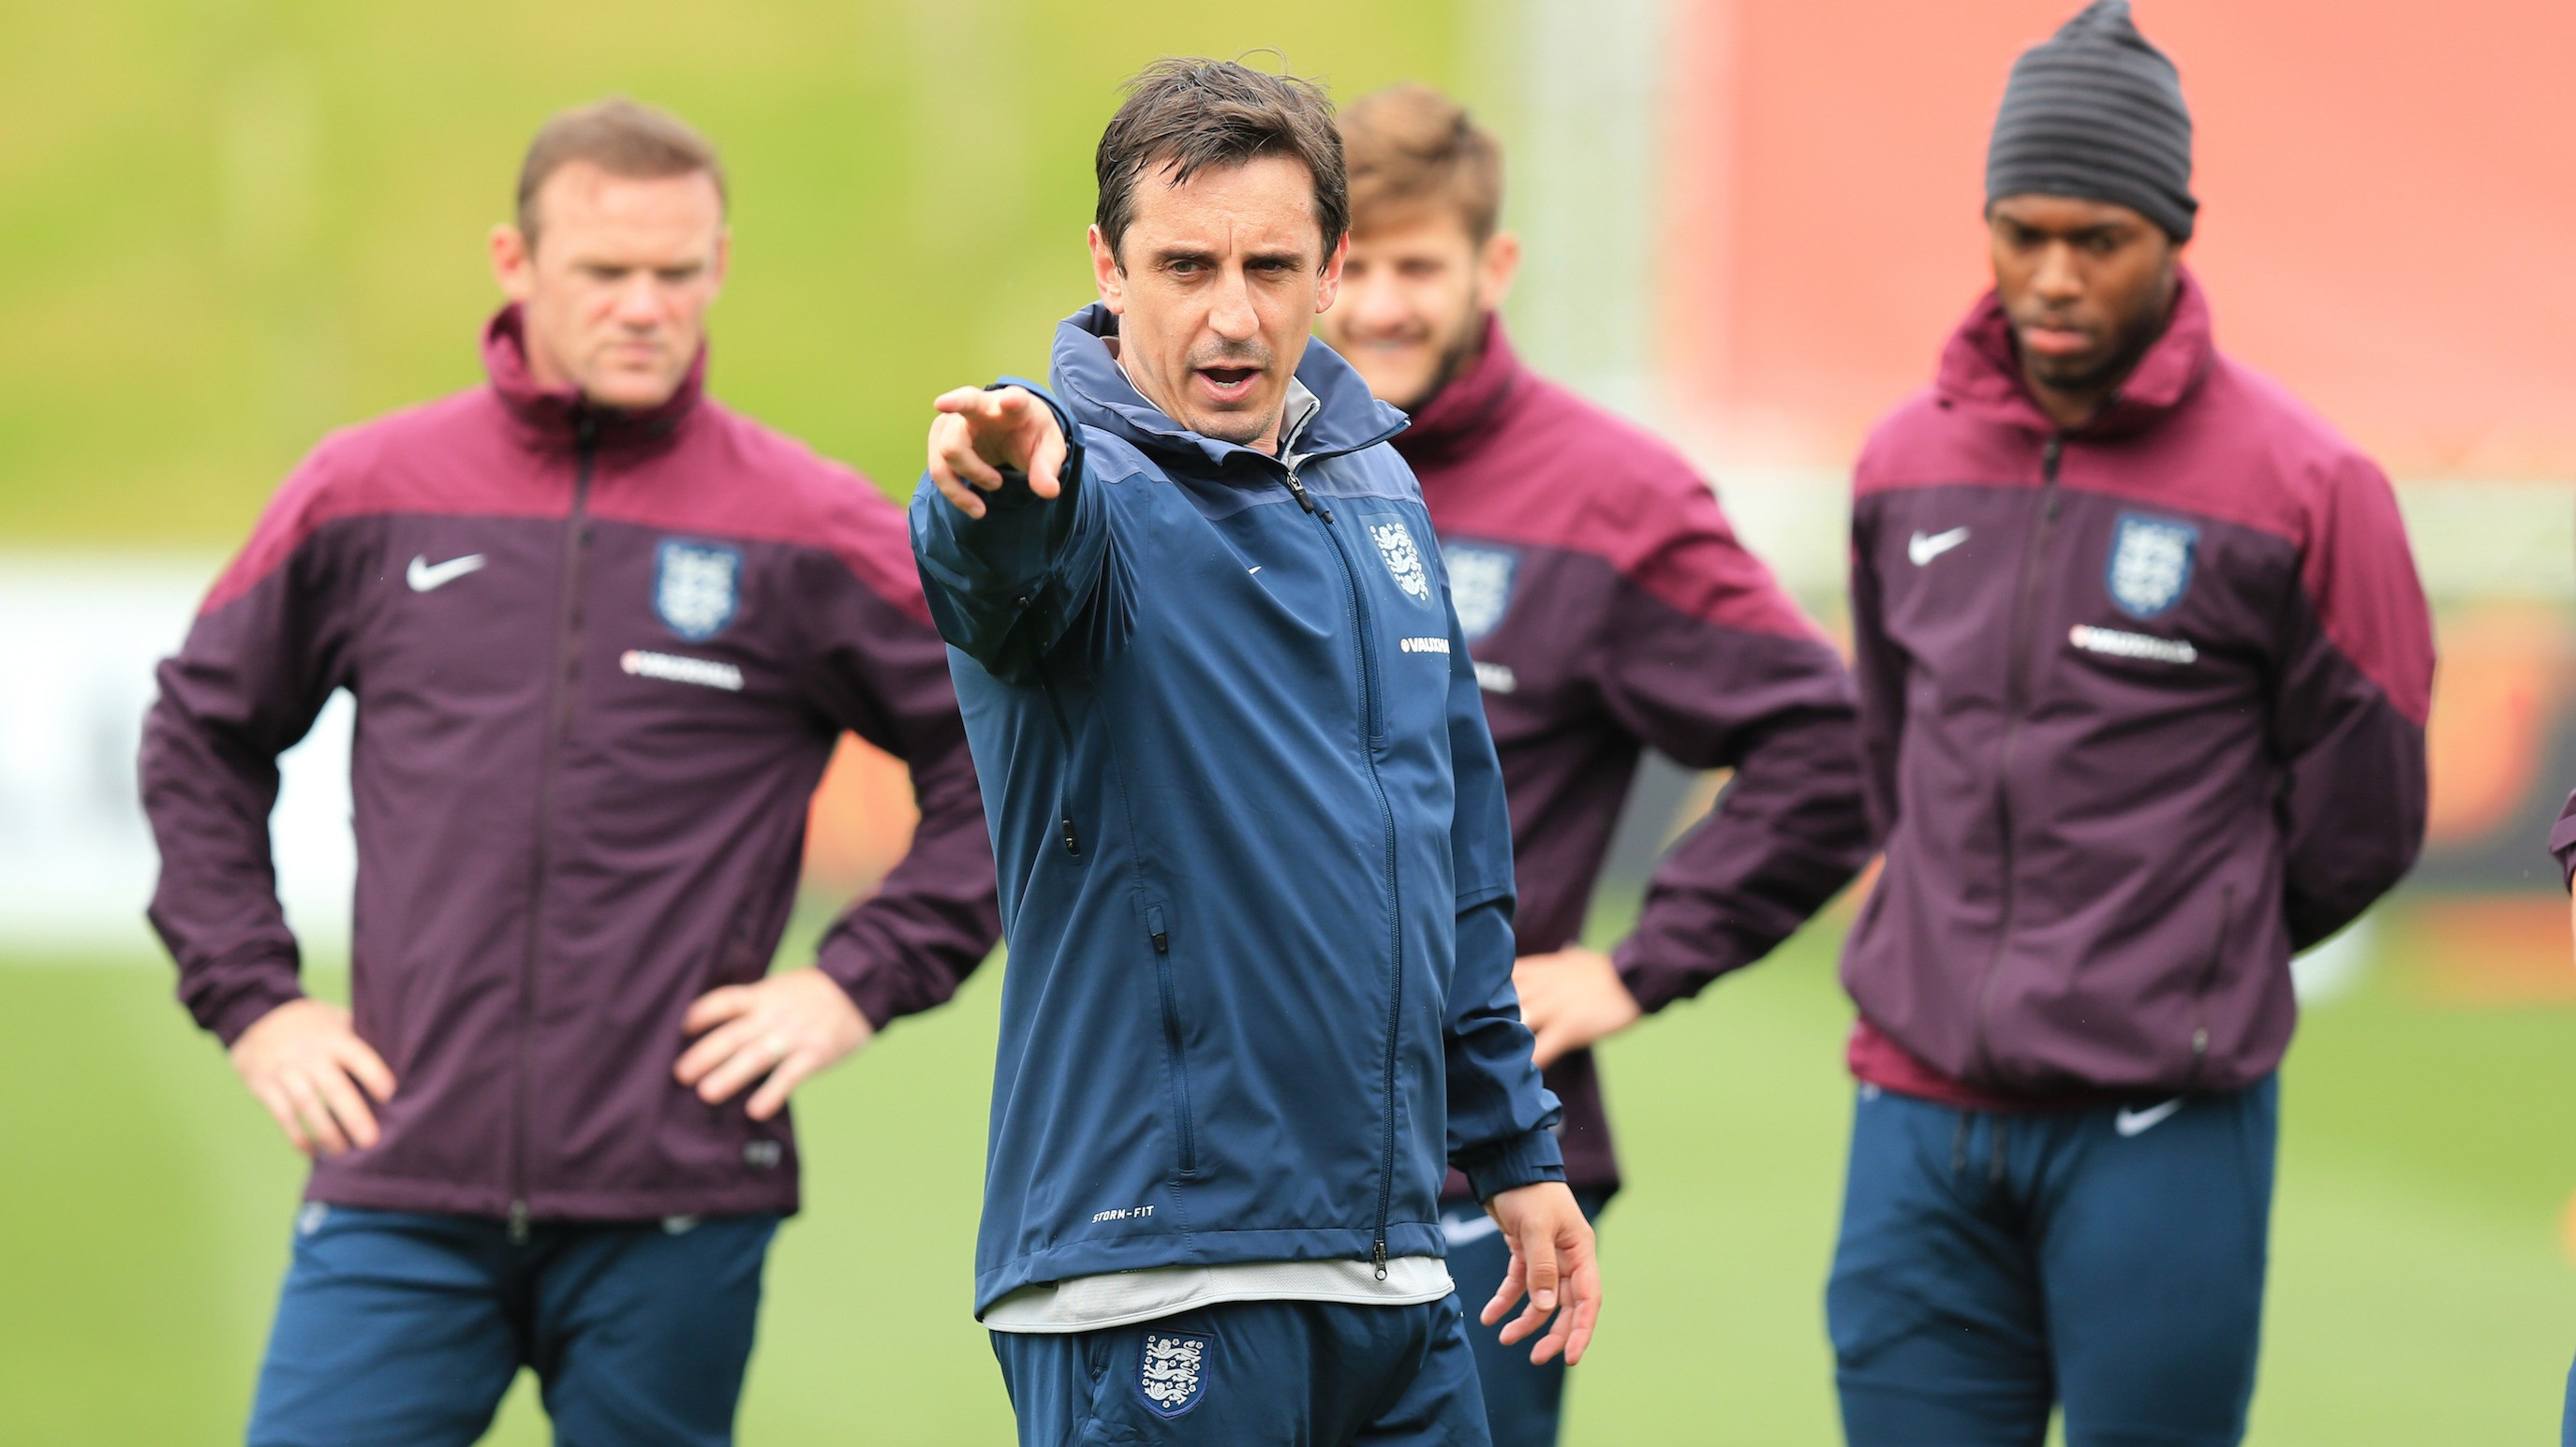 Can Neville Stake His Claim as Van Gaal's Successor?